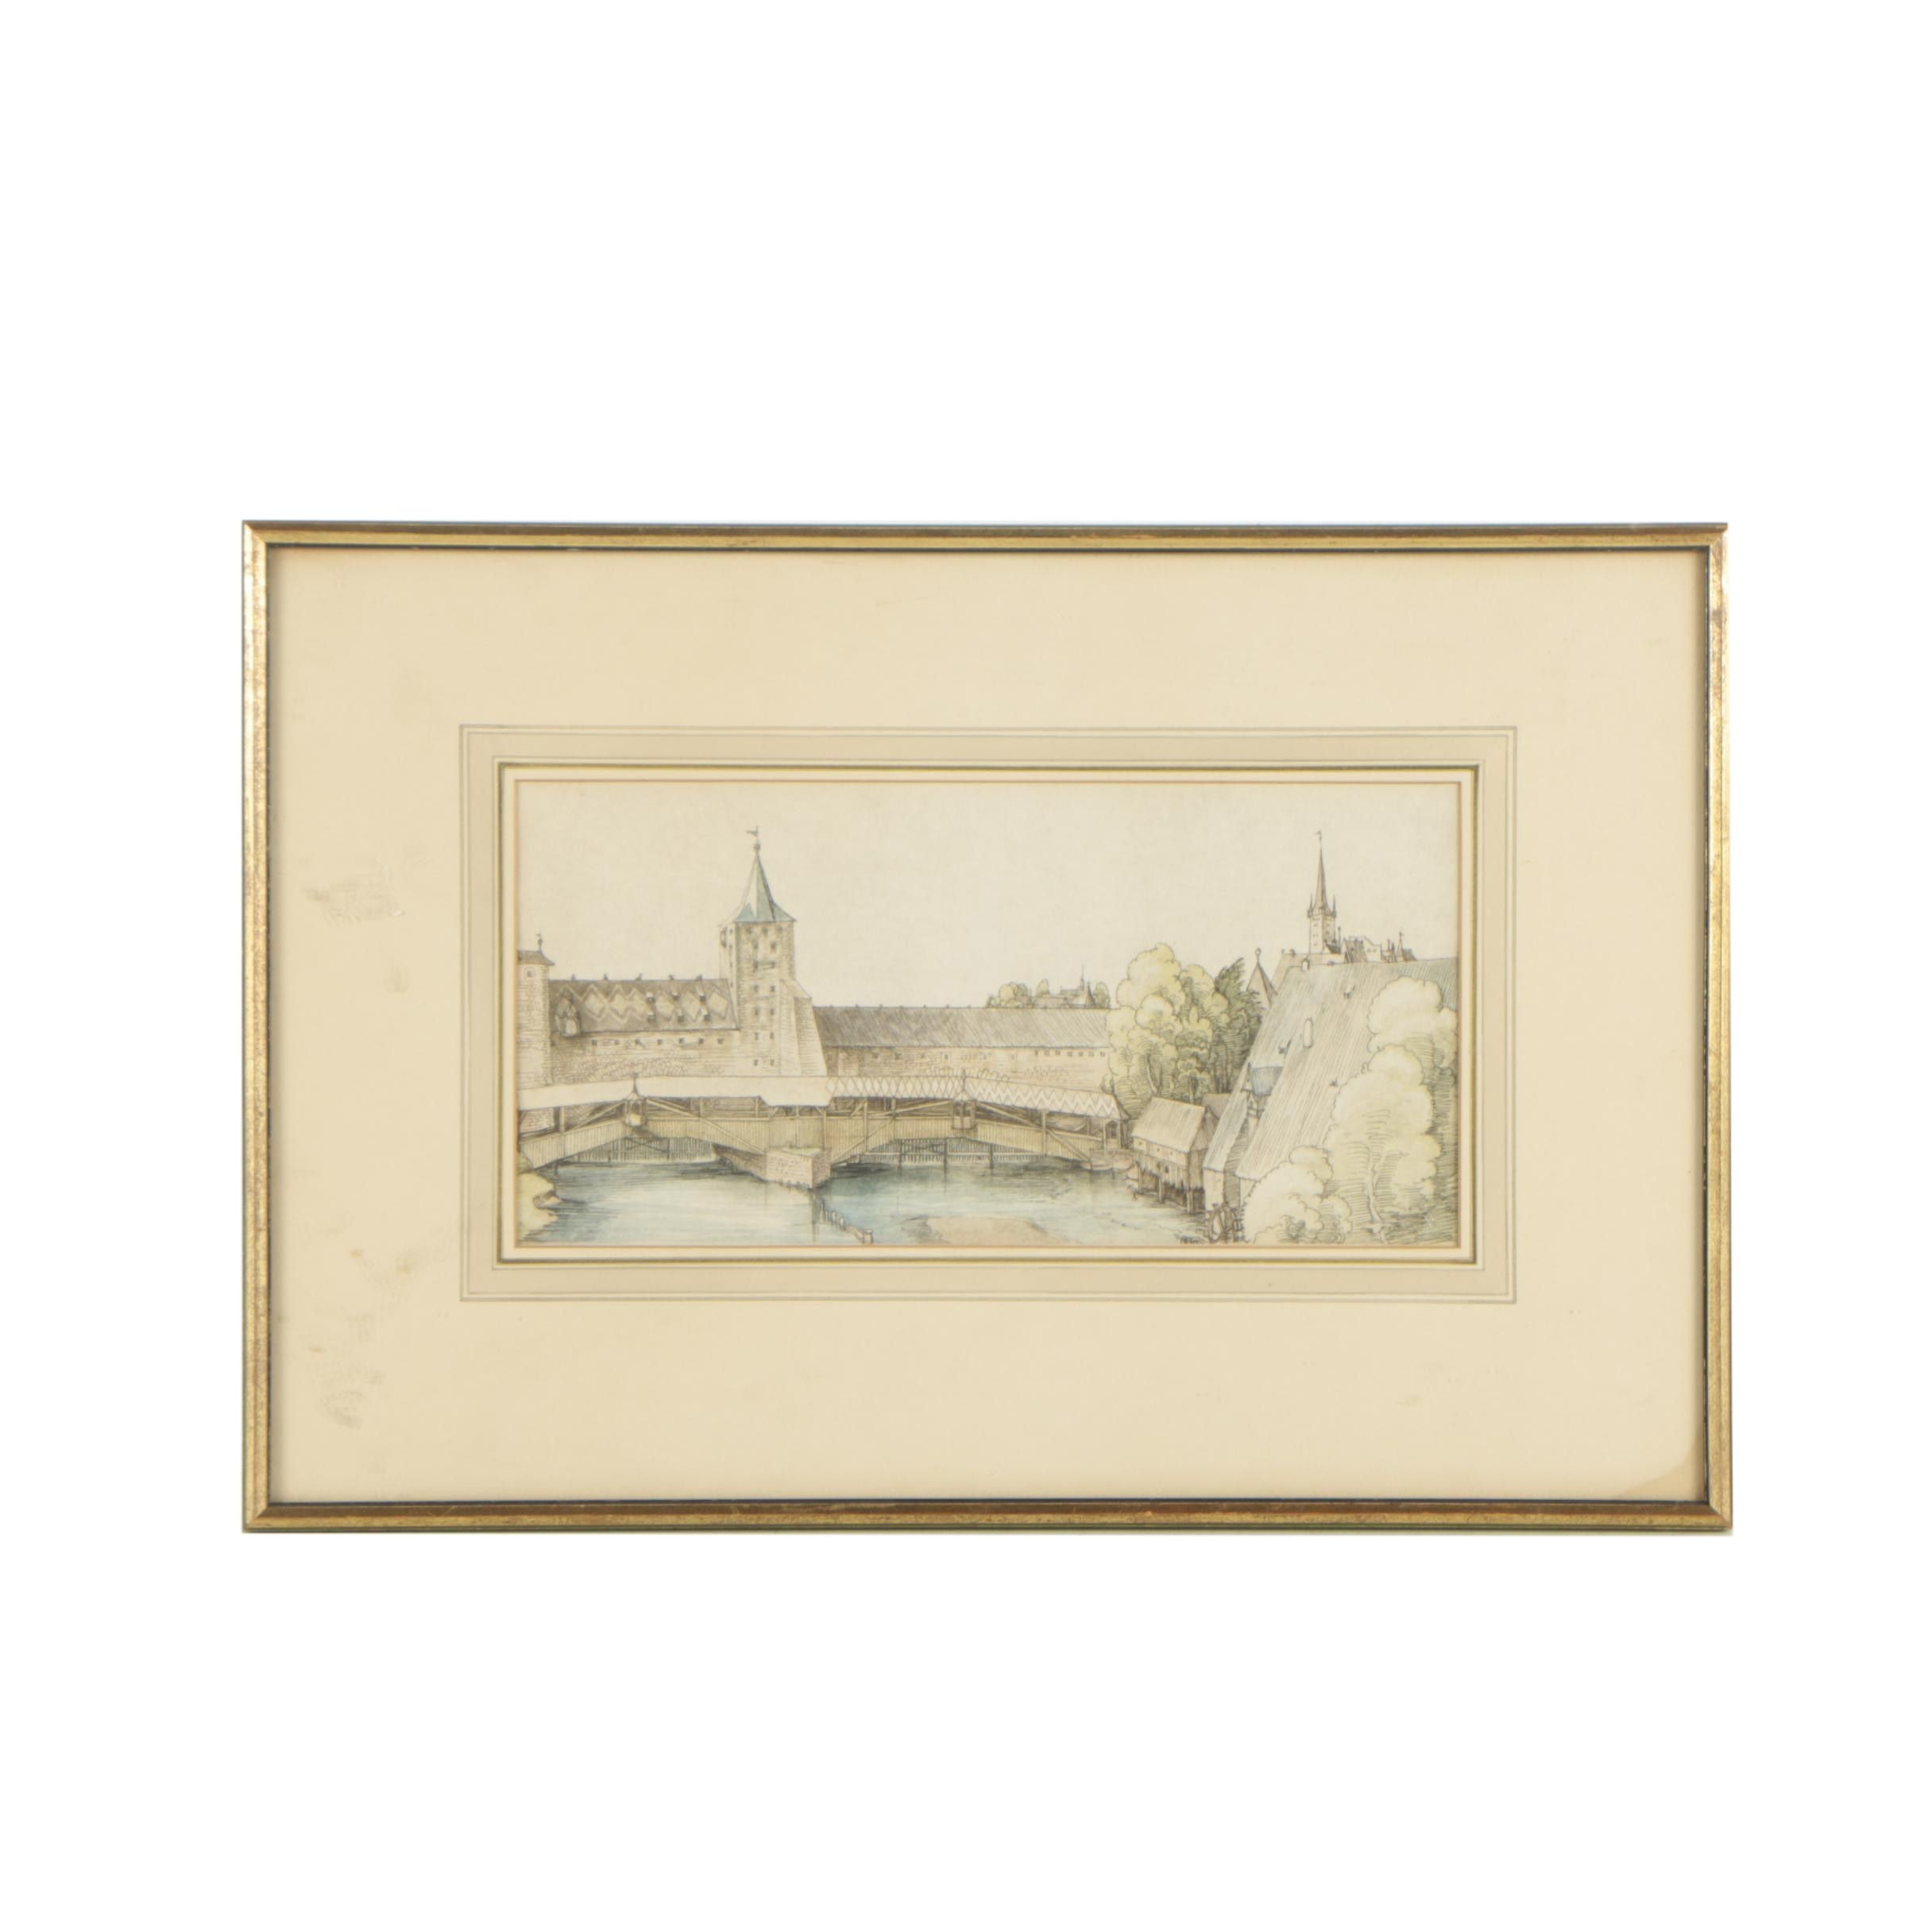 "Hand-Colored Etching After Albrecht Dürer ""A Covered Bridge at Nuremburg"""